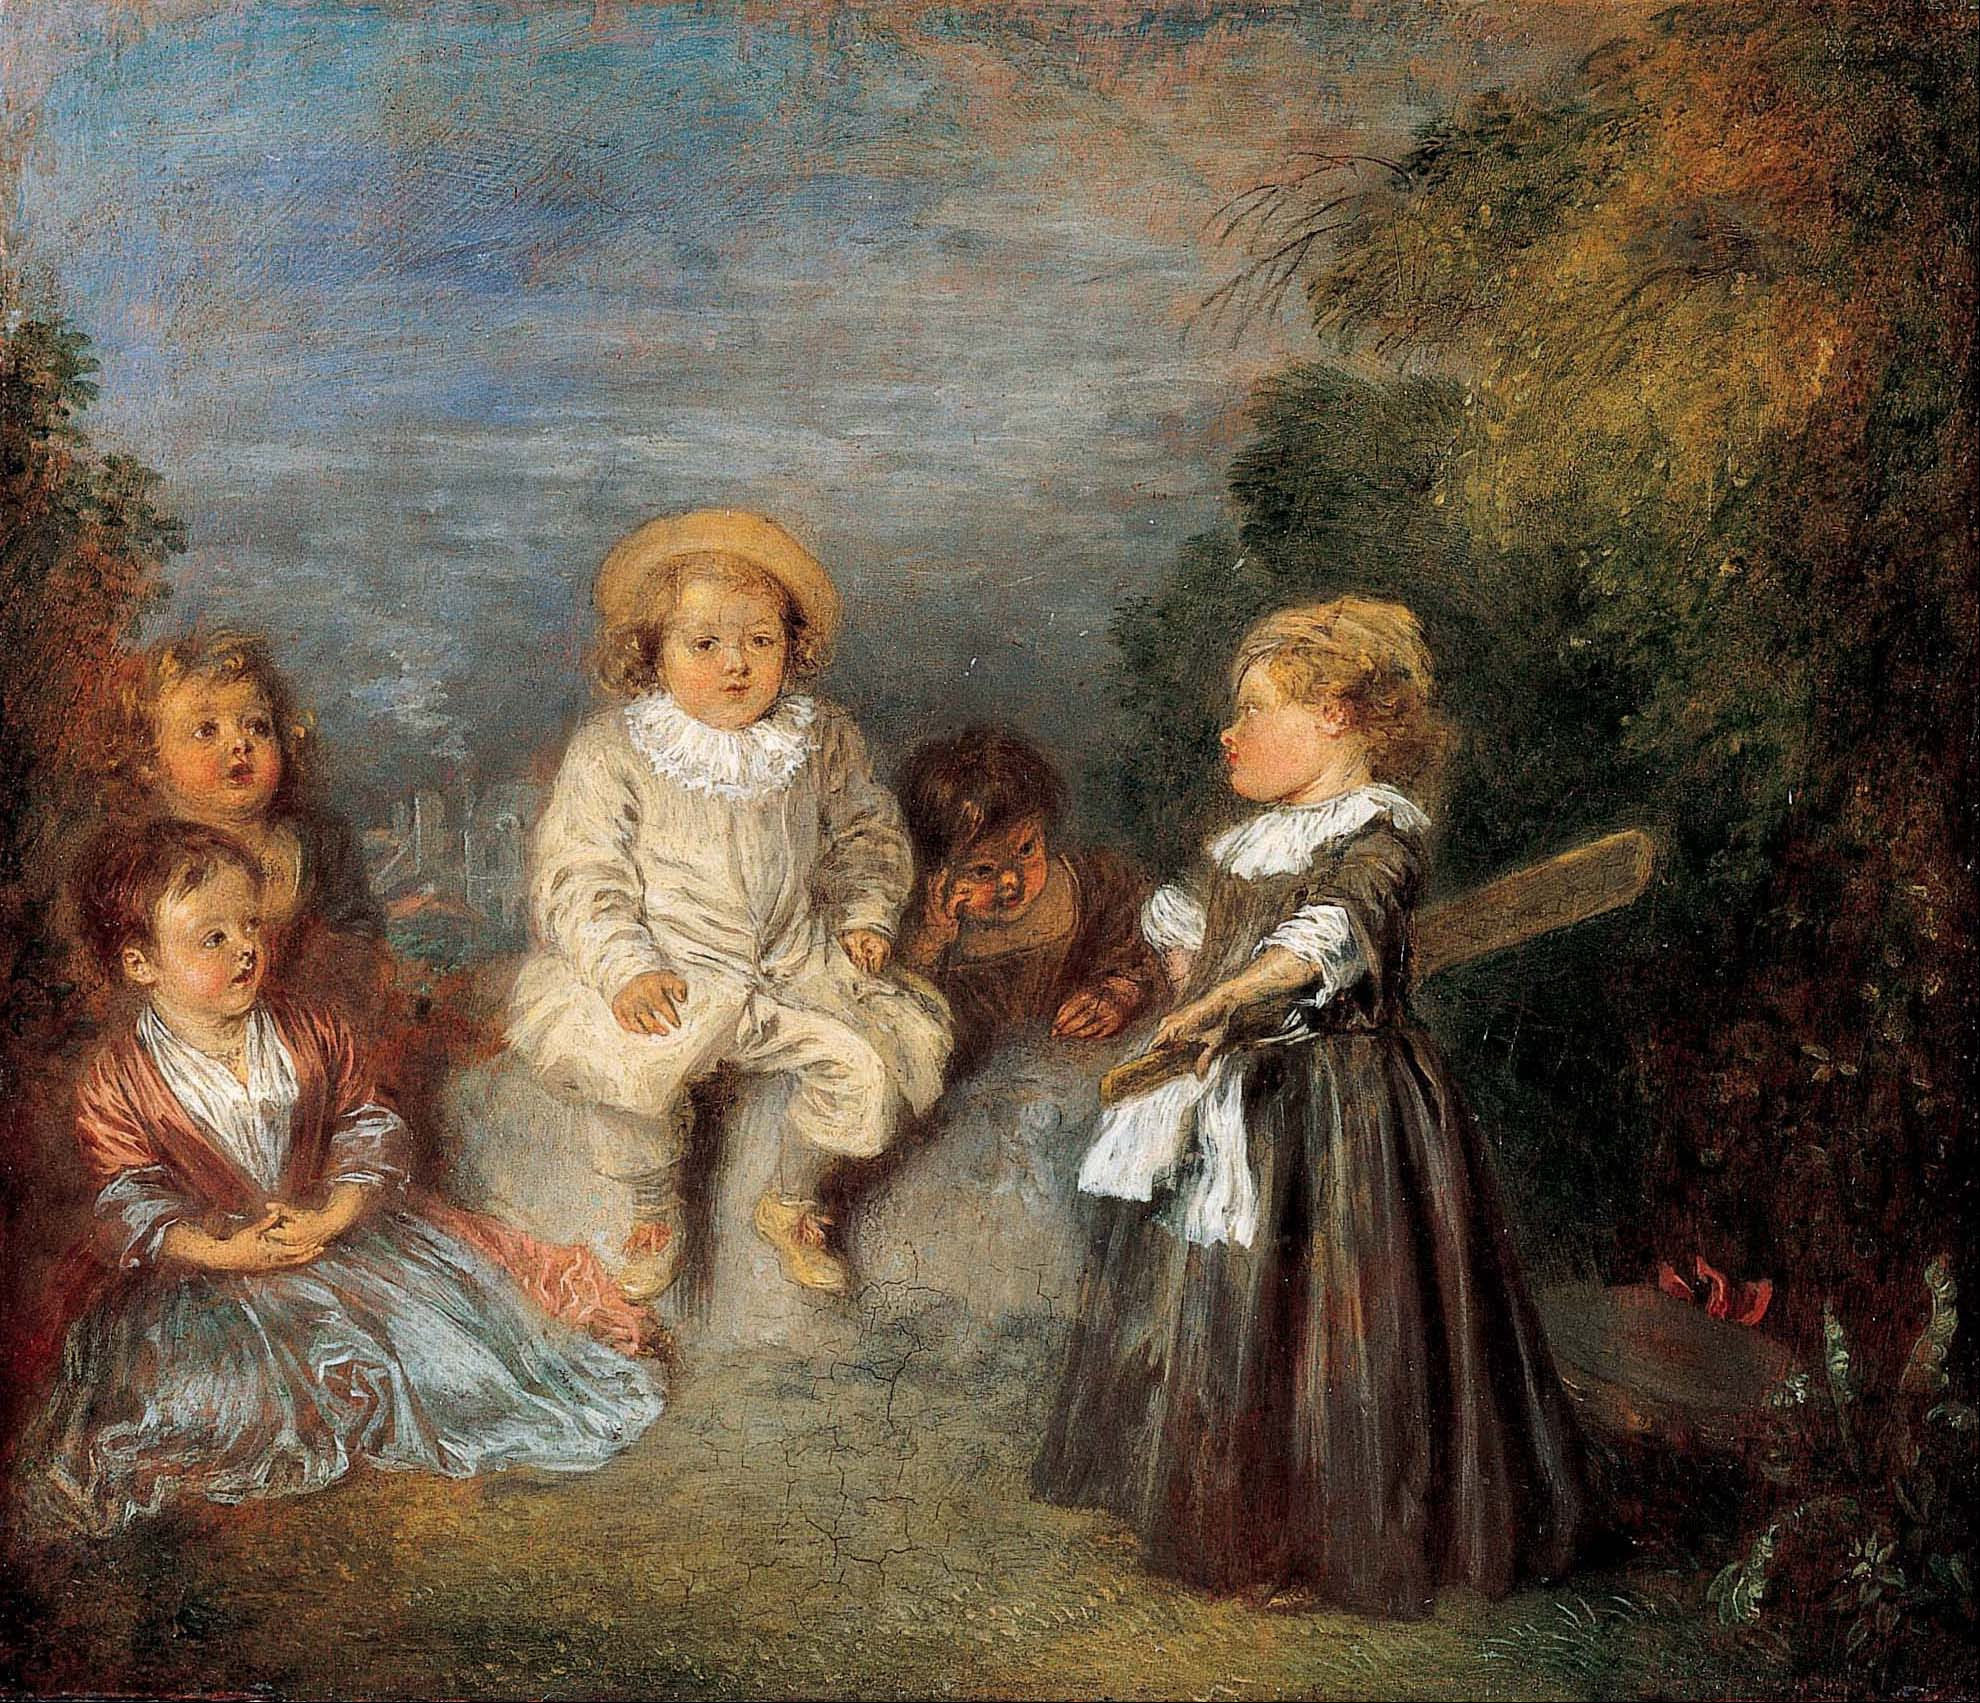 Jean Antoine Watteau - Page 2 Jean-Antoine_Watteau_-_Heureux_age%21_Age_d%27or_%28Happy_Age%21_Golden_Age%29_-_Google_Art_Project